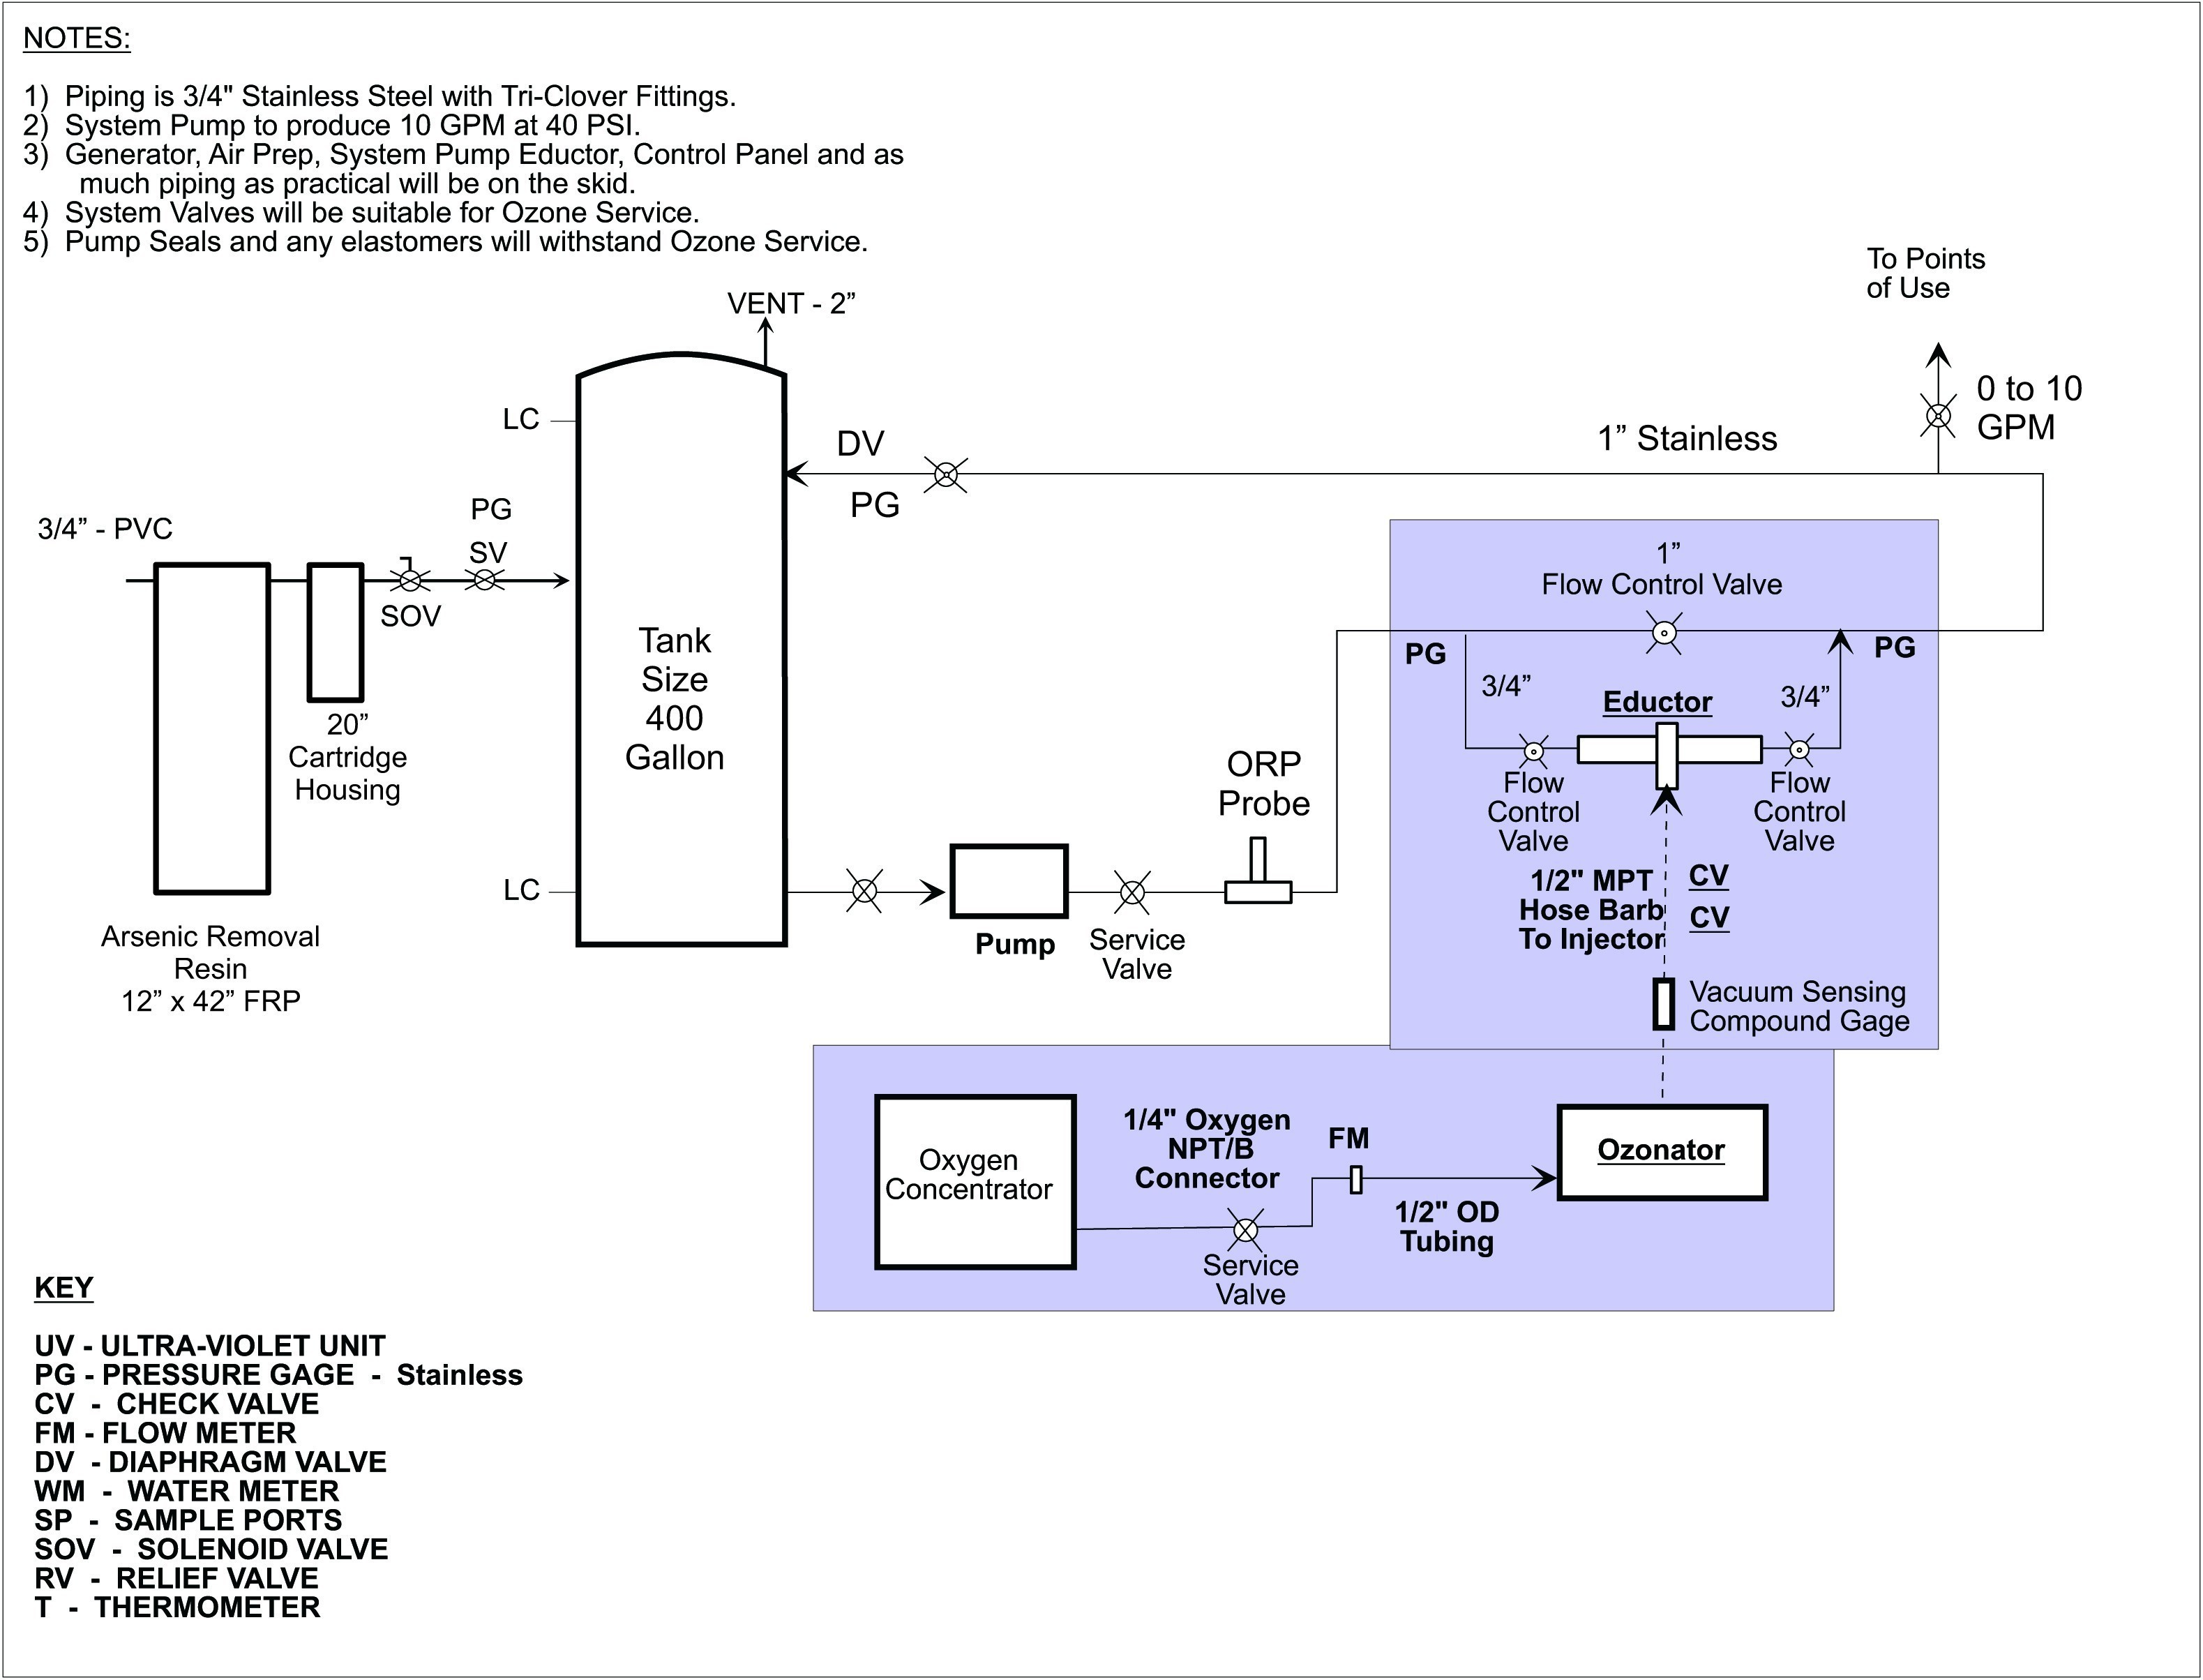 73 Gmc Truck Wiring Diagram | Best Wiring Liry Trailer Wiring Diagram For A Road Runner on